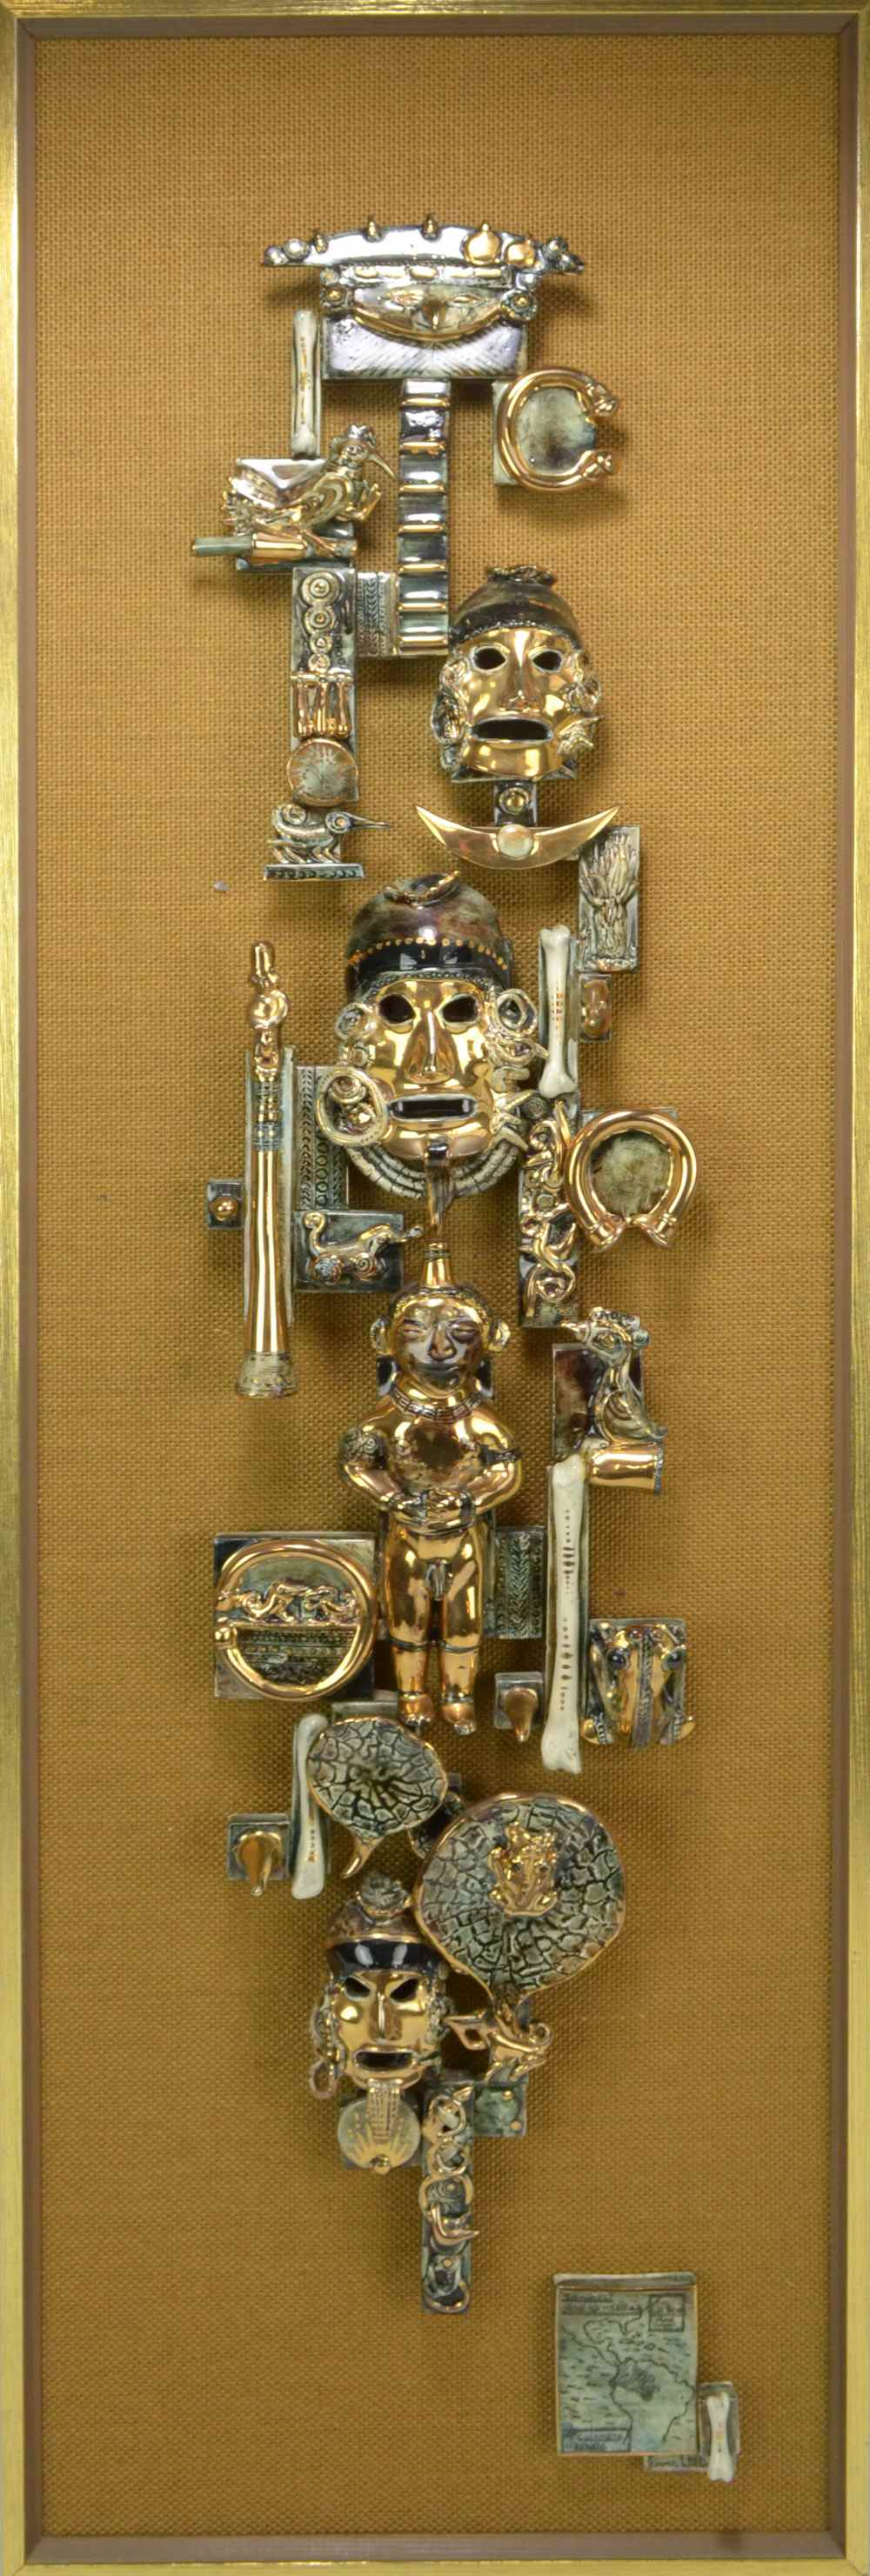 Lot 82 - BOWEN WILLIAMS; an abstract wall plaque depicting South American masks and artifacts on a hessian